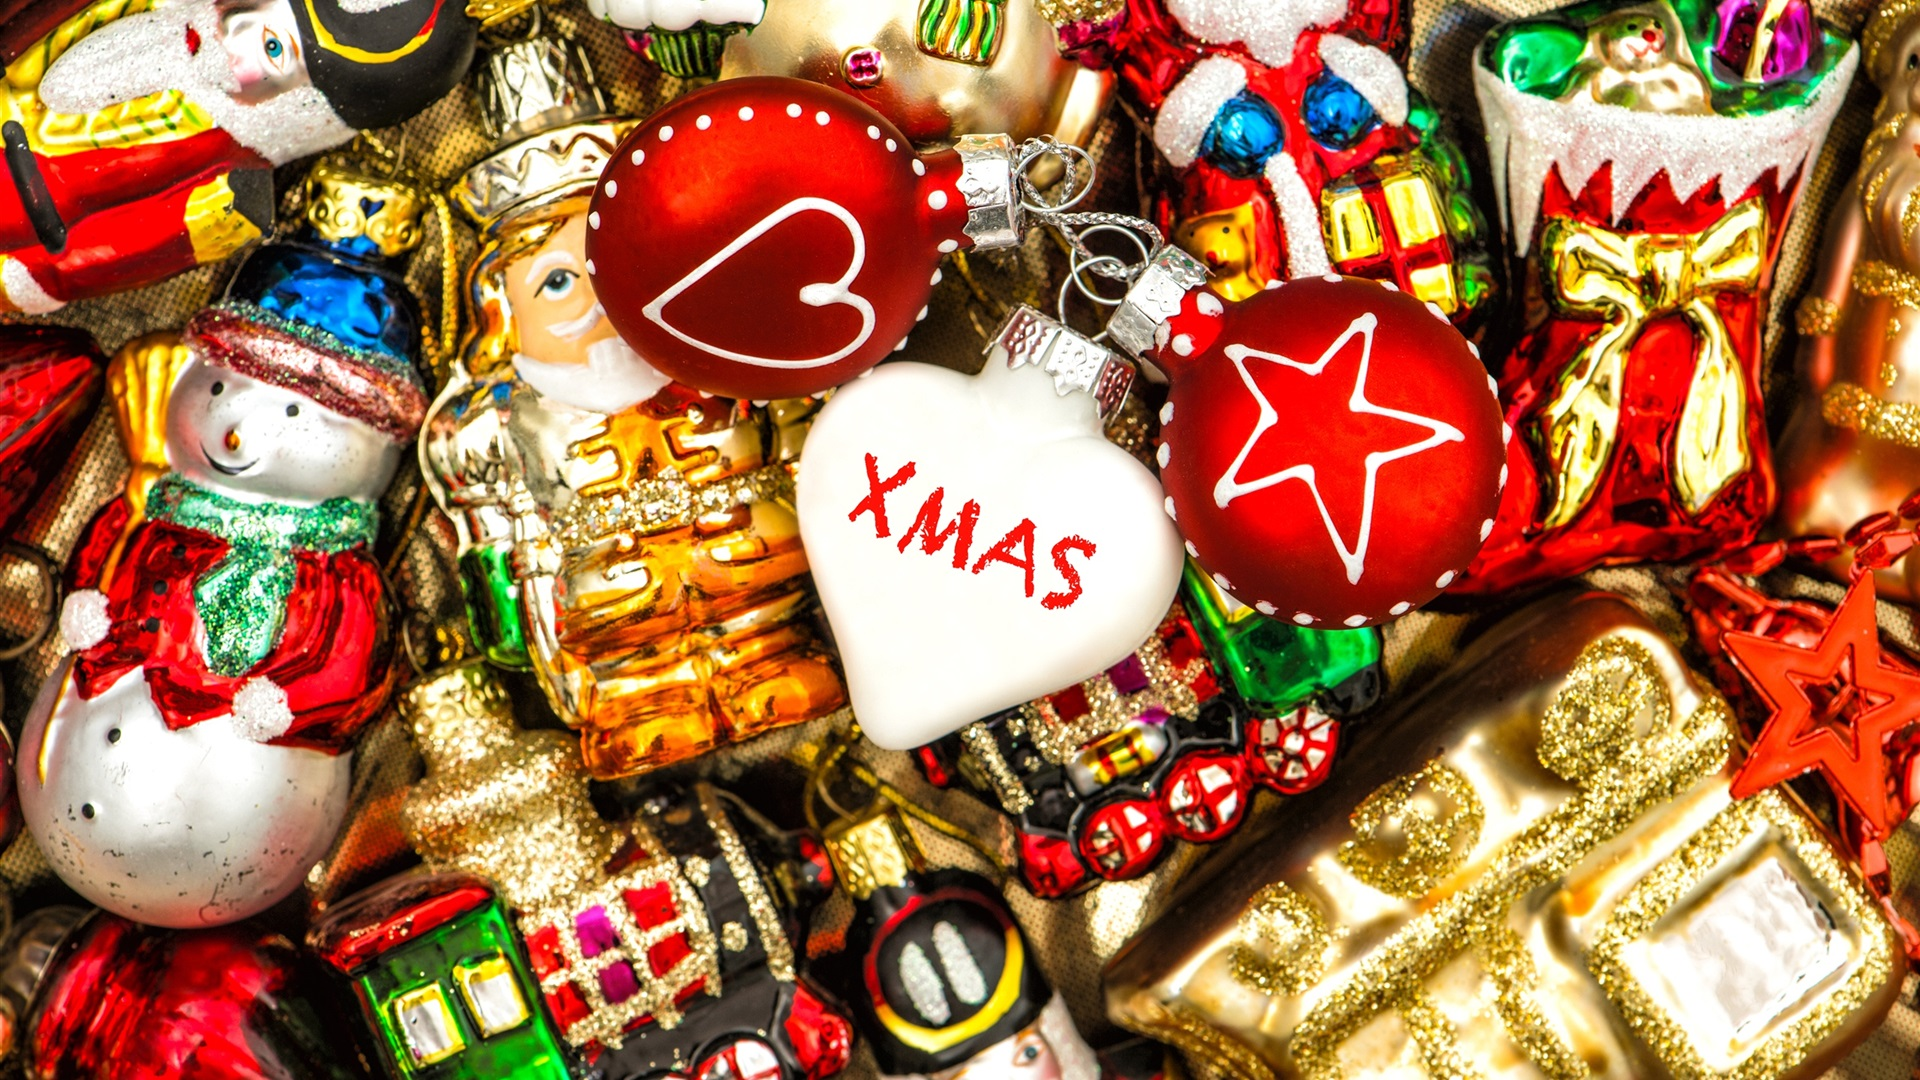 Pin Christmas Decorations Wallpaper Holiday Wallpapers 9213 on ...